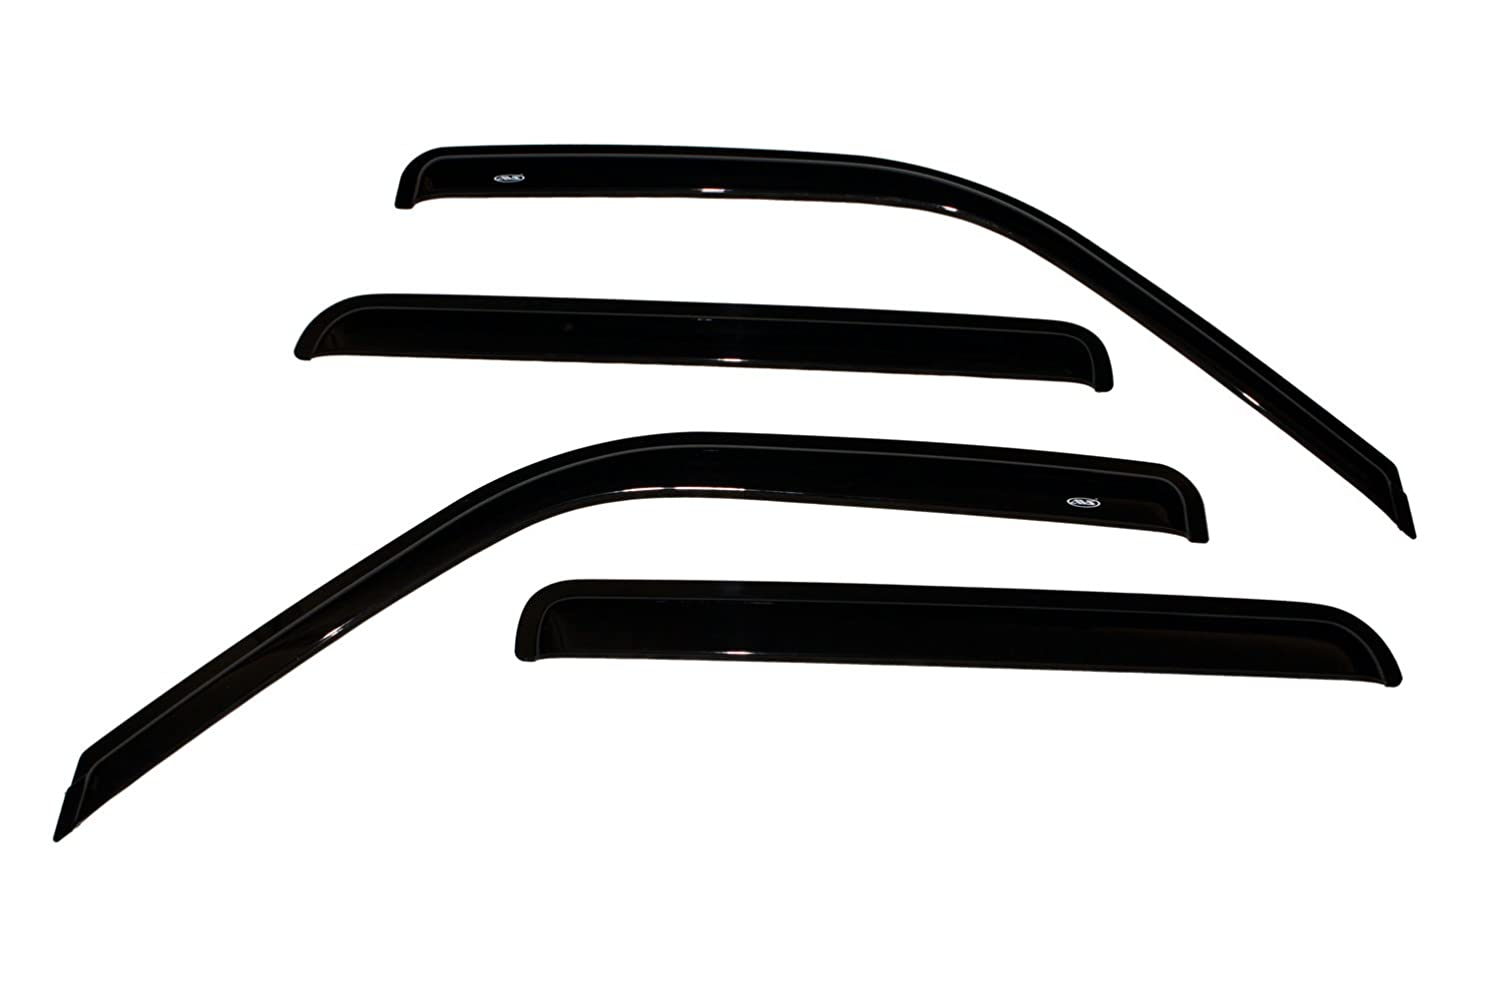 Auto Ventshade 94095 Original Ventvisor Side Window Deflector Dark Smoke, 4-Piece Set for 1992-2000 Chevrolet & GMC C/K1500-C/K3500 Crew Cab, 1995-2000 Tahoe & Yukon, 1999-2000 Escalade & Yukon Denali